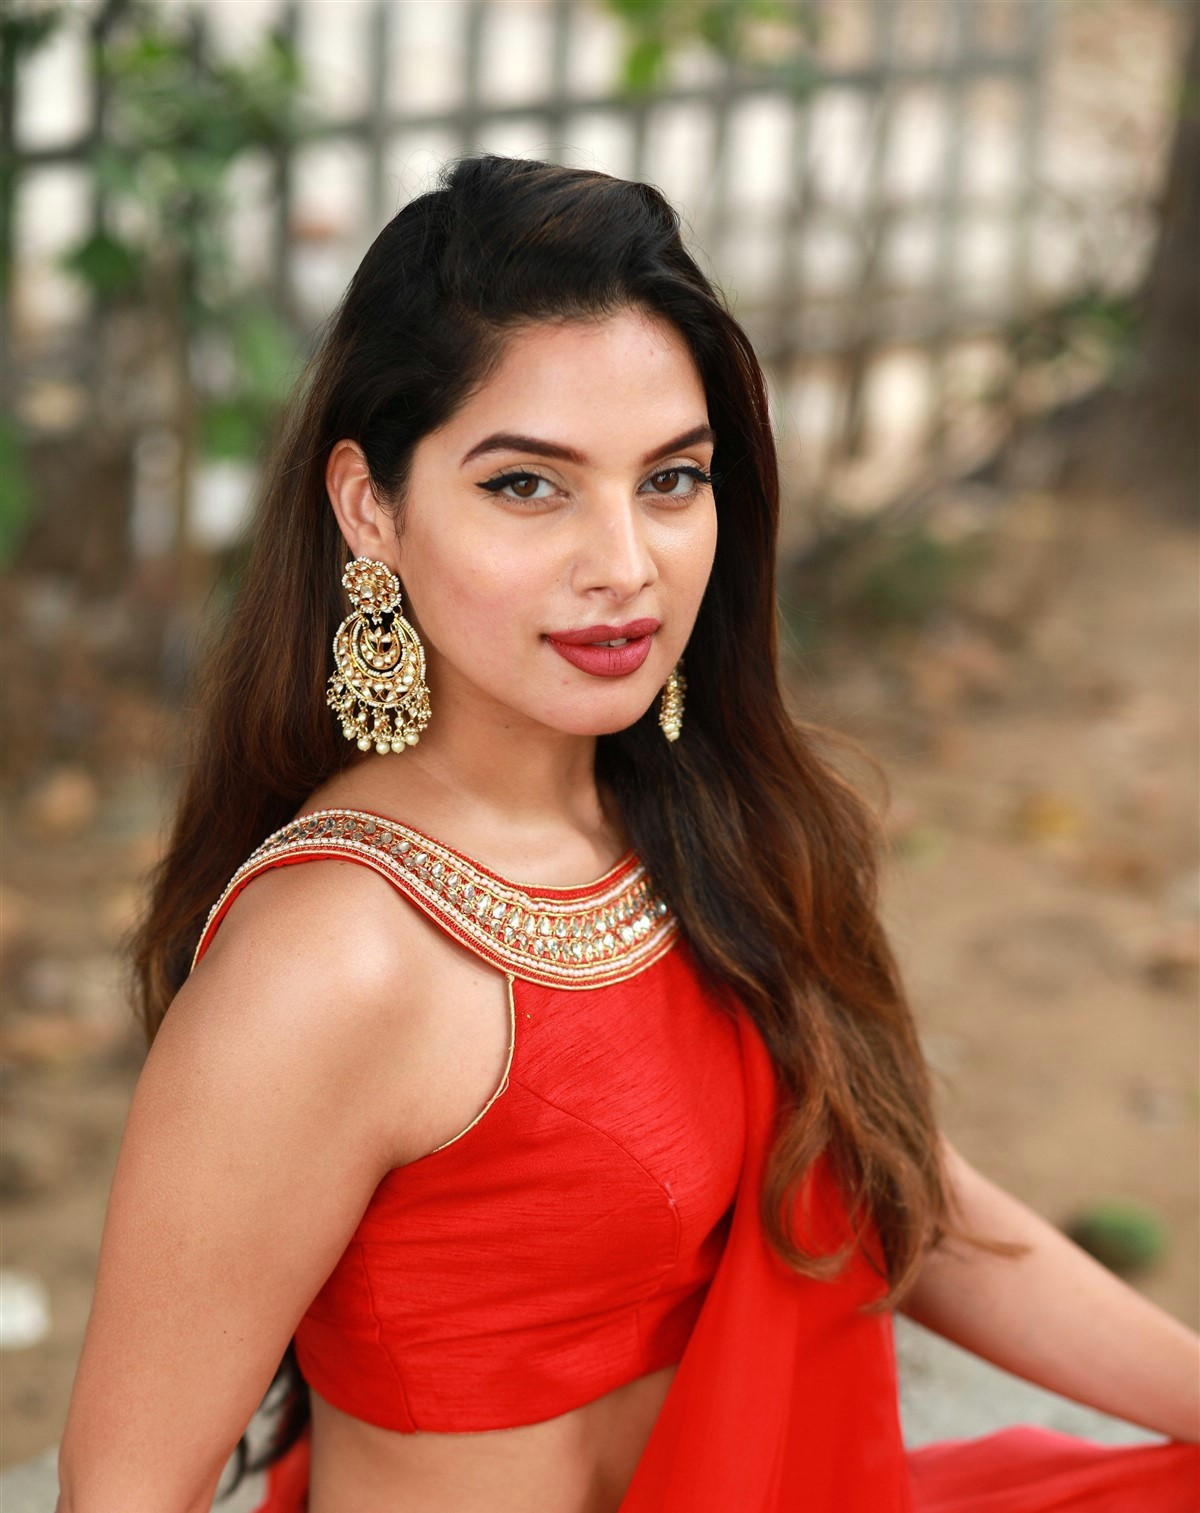 actress tanya hope red saree hot and sexy pose 5 Actress Tanya Hope Hot Red Dress